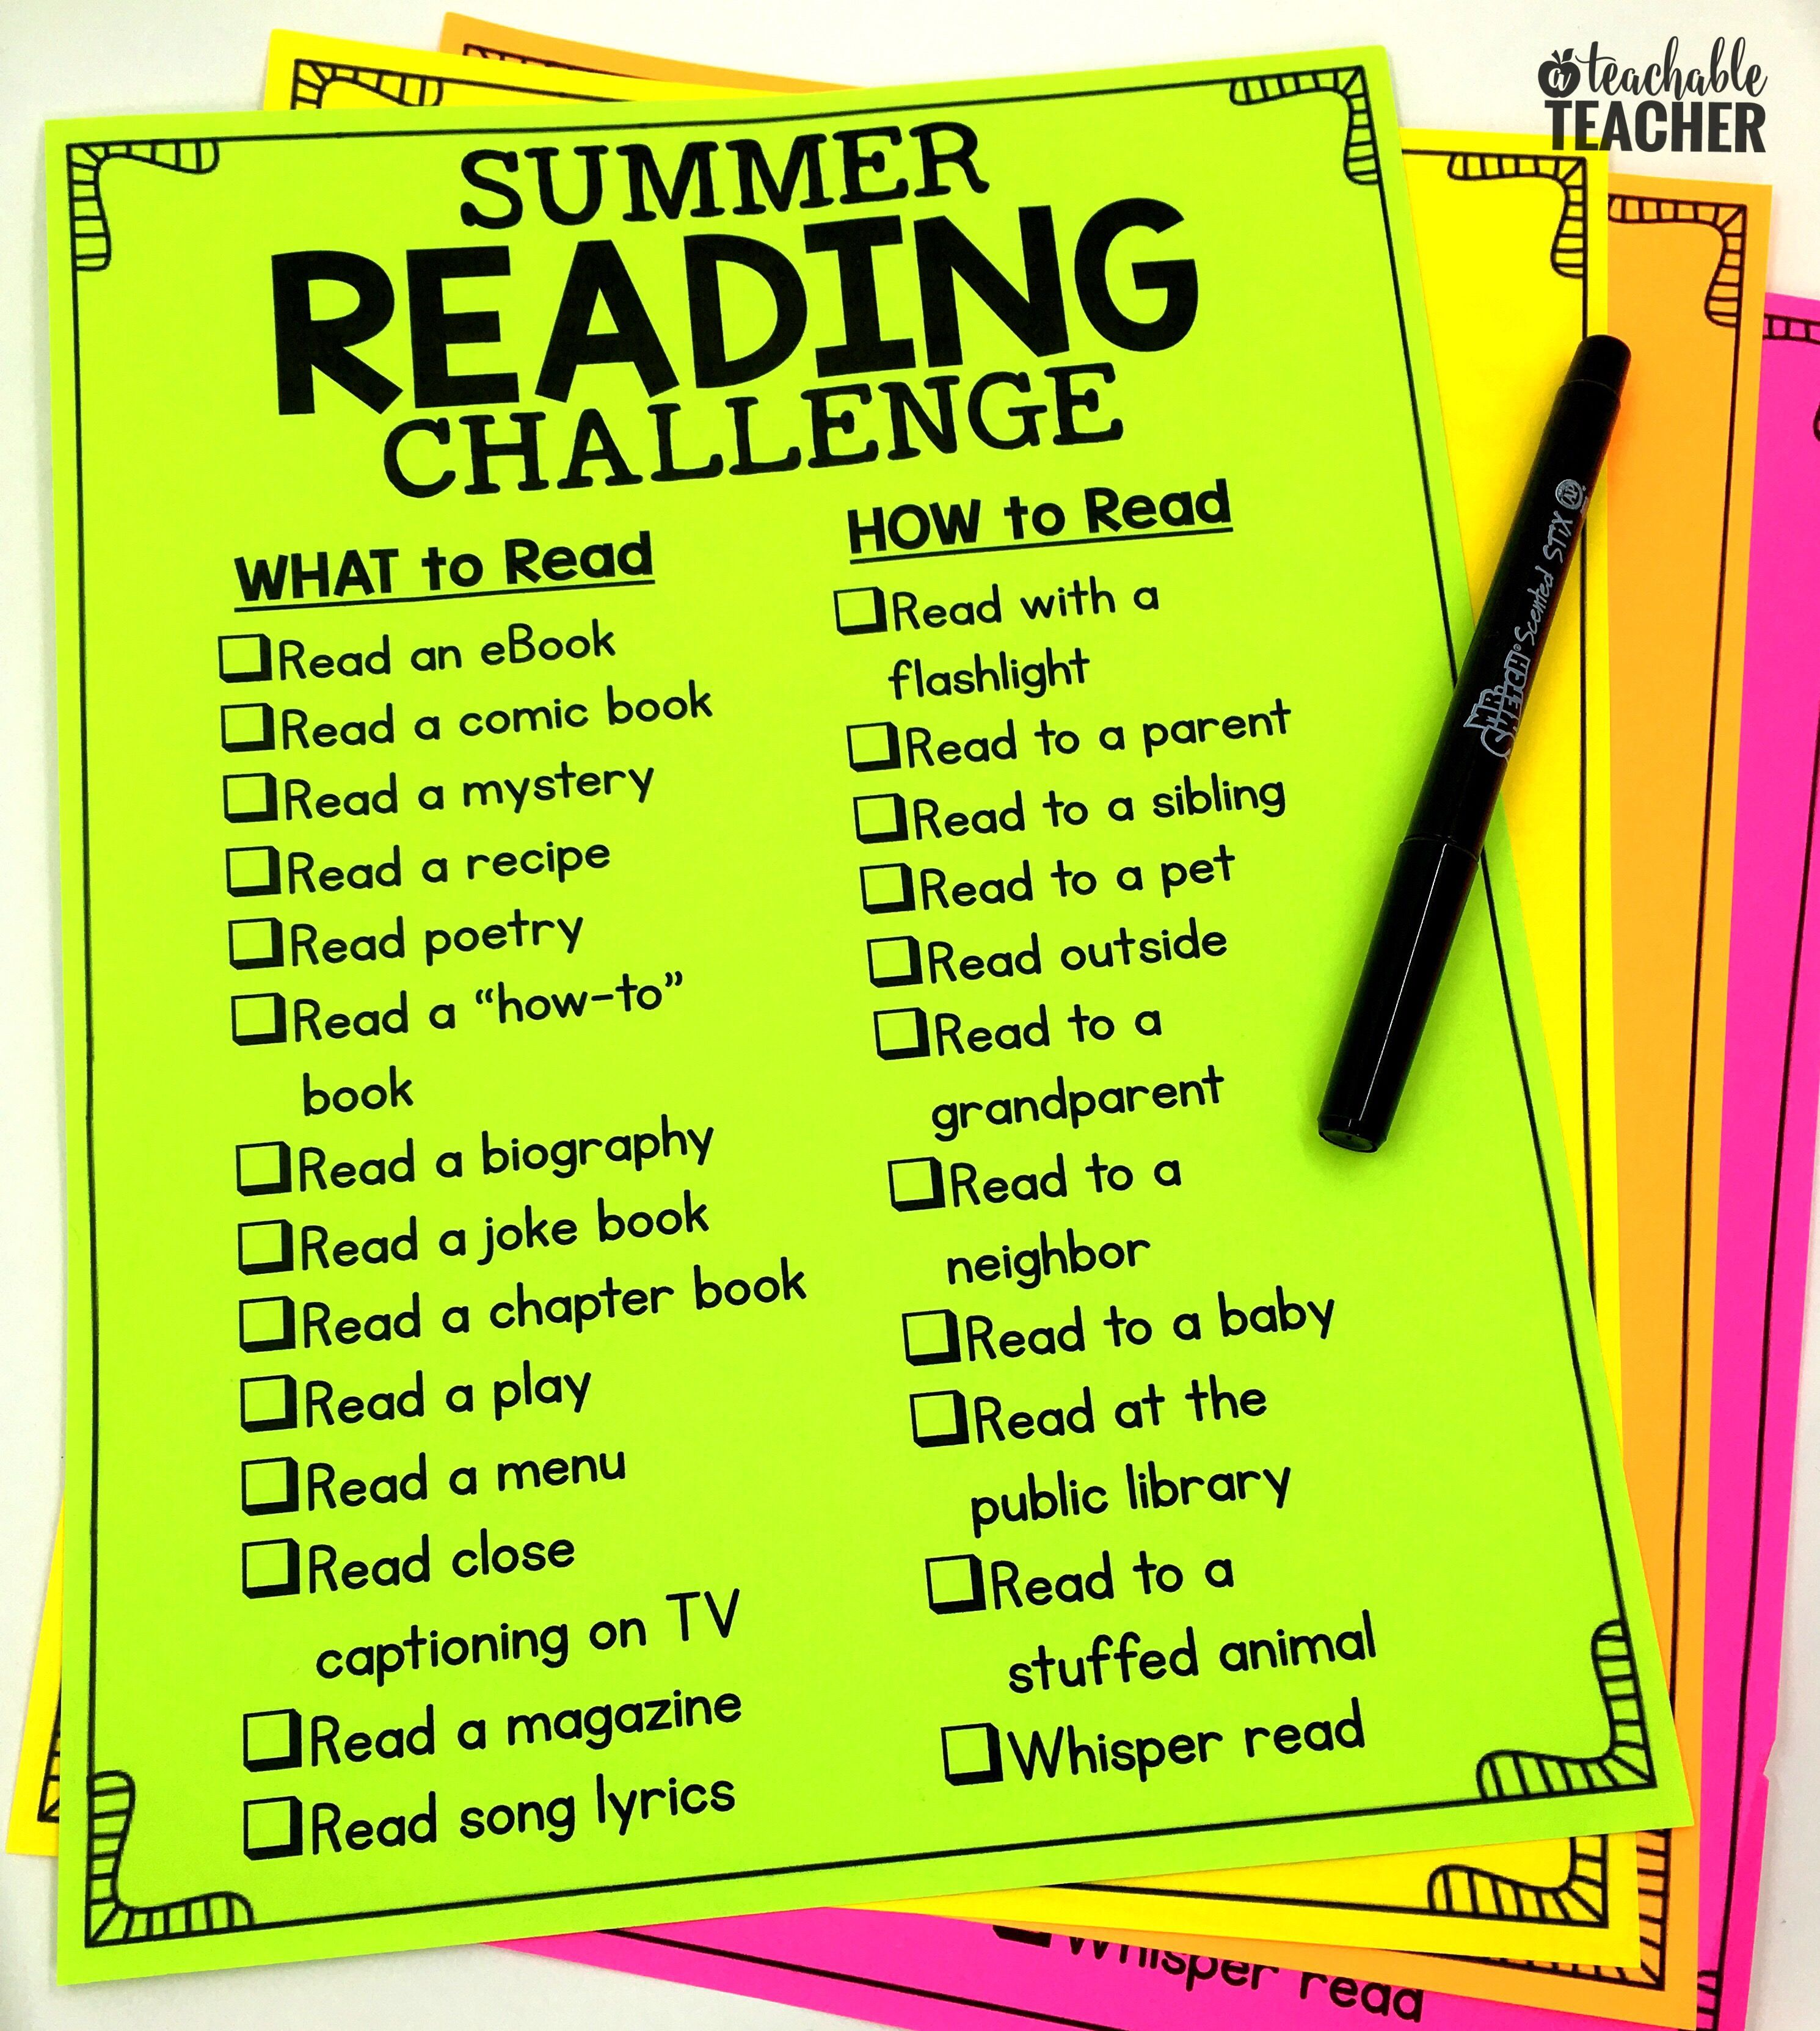 This Is Such A Way Fun To Do Summer Reading Challenge For Kids Go The Website Free Printable